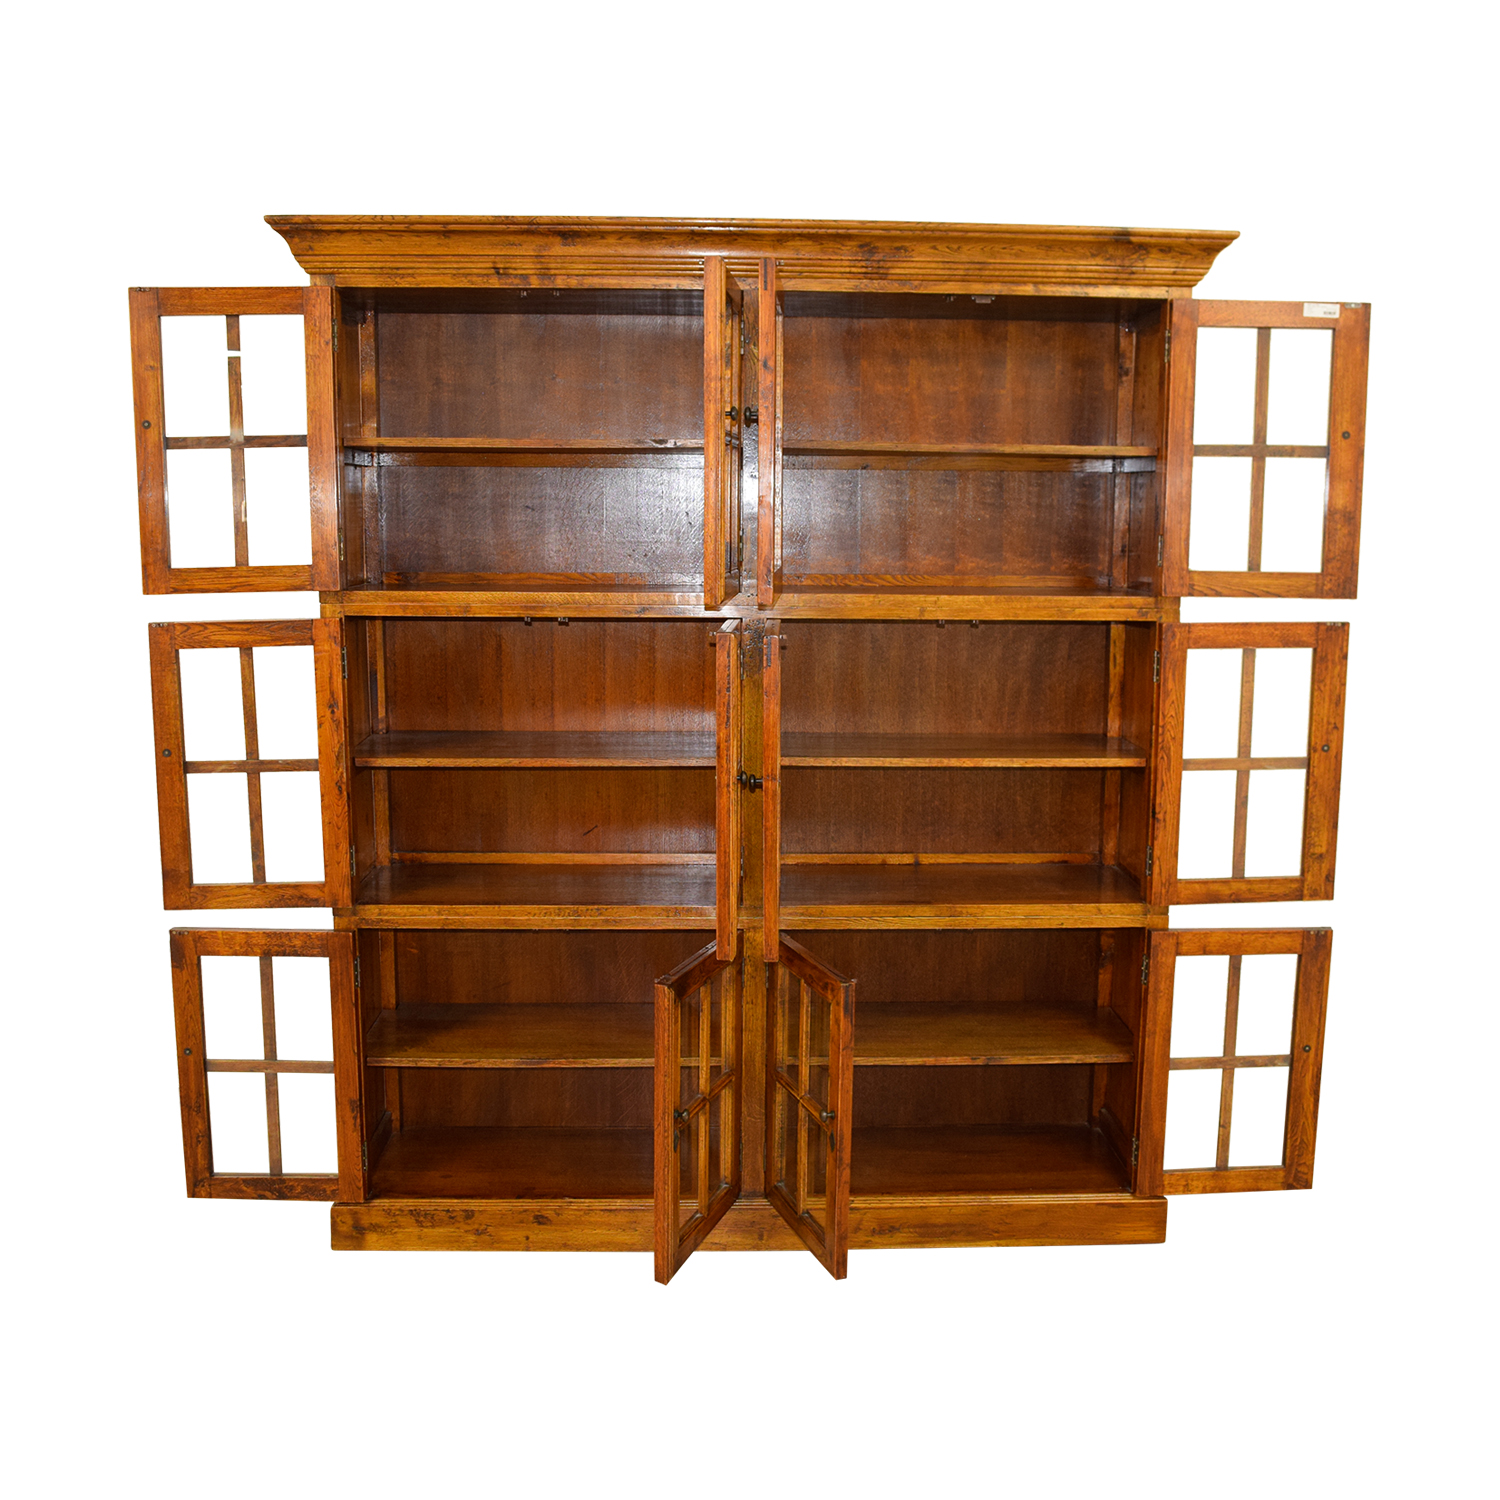 ABC Carpet & Home ABC Carpet & Home Brown Imported Bookcase second hand